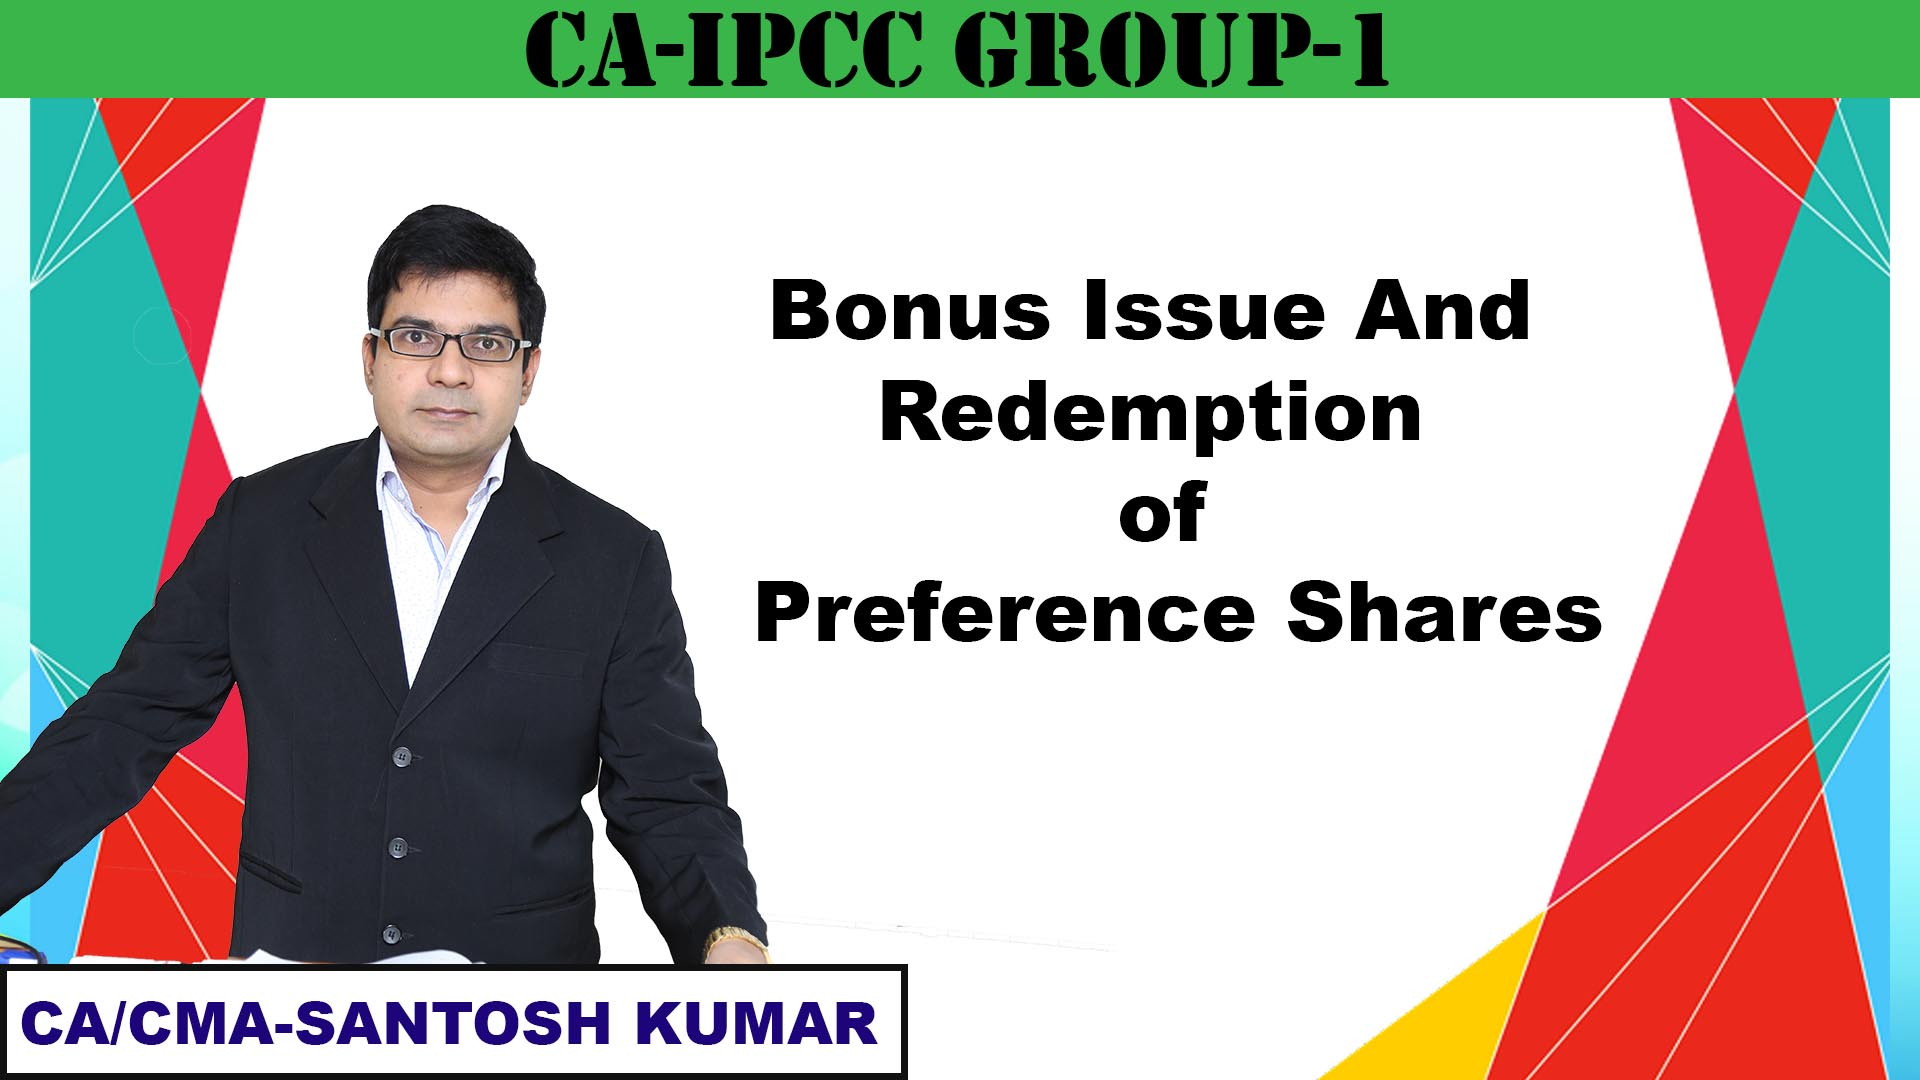 Bonus Issue and Redemption of Preference Shares